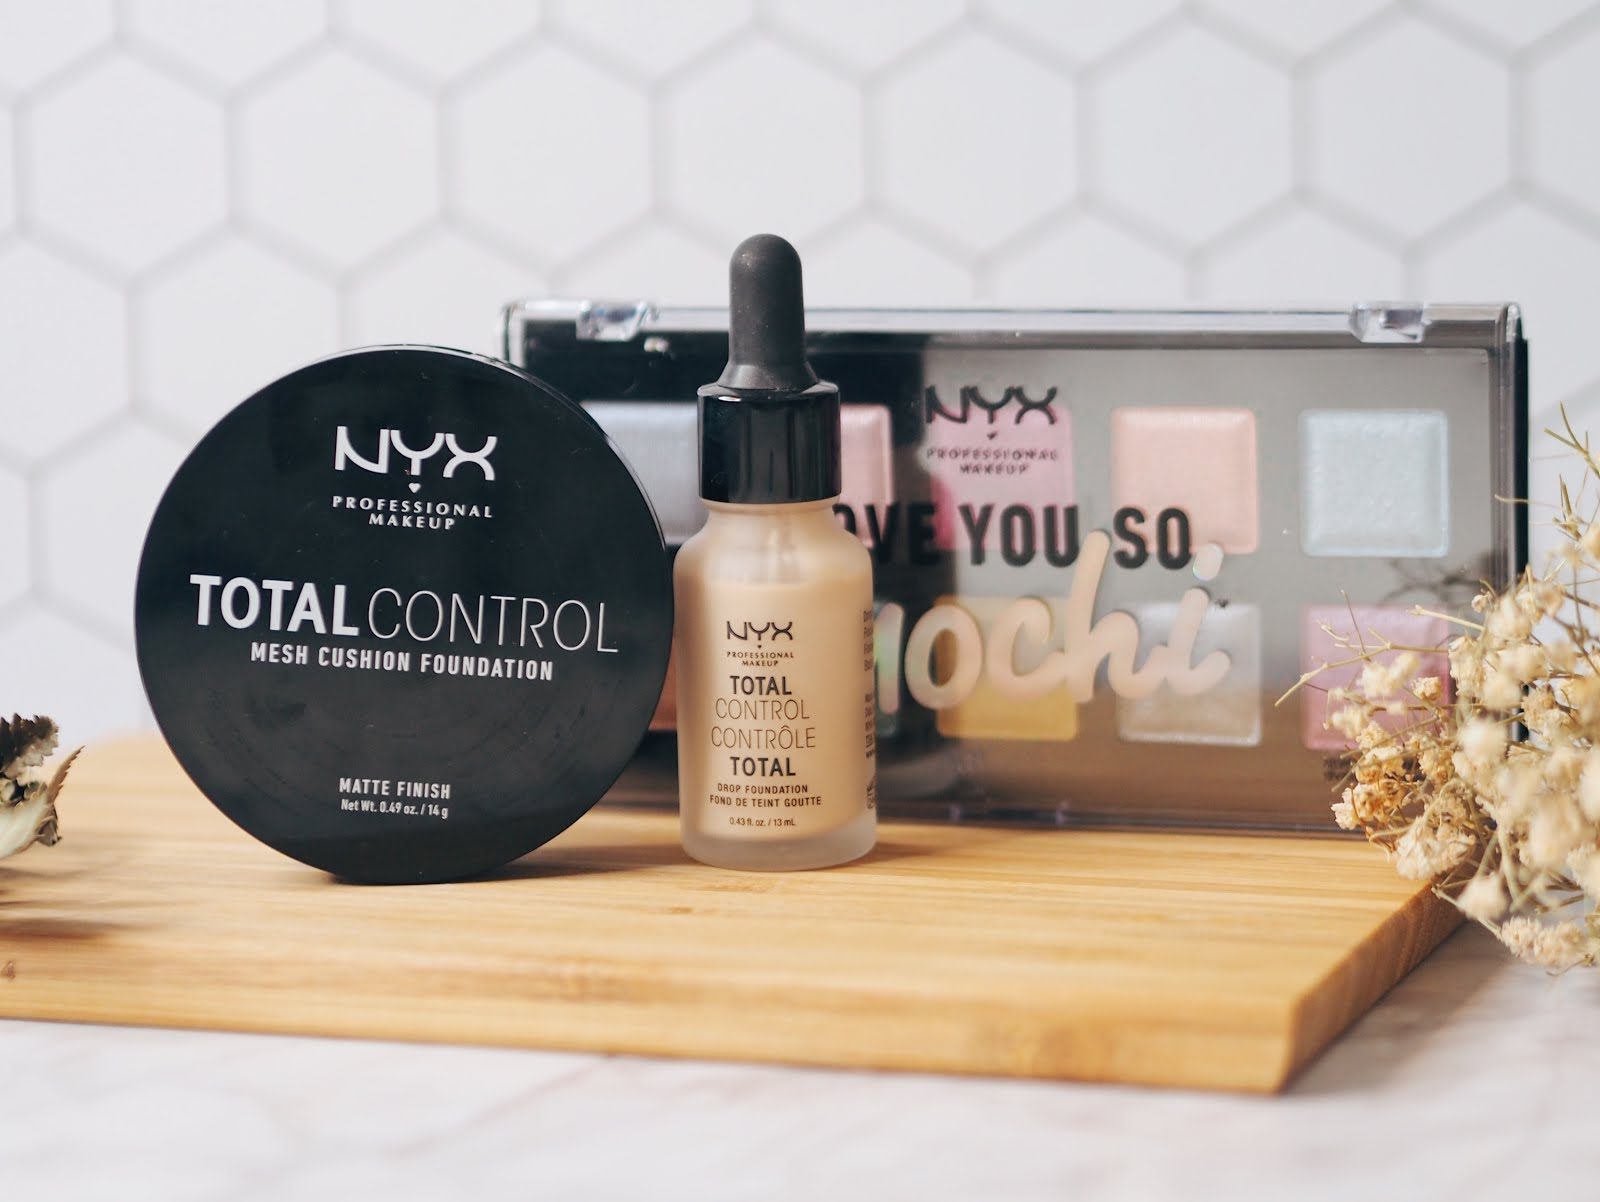 Total Control Mesh Cushion Foundation Drop Foundation From Nyx